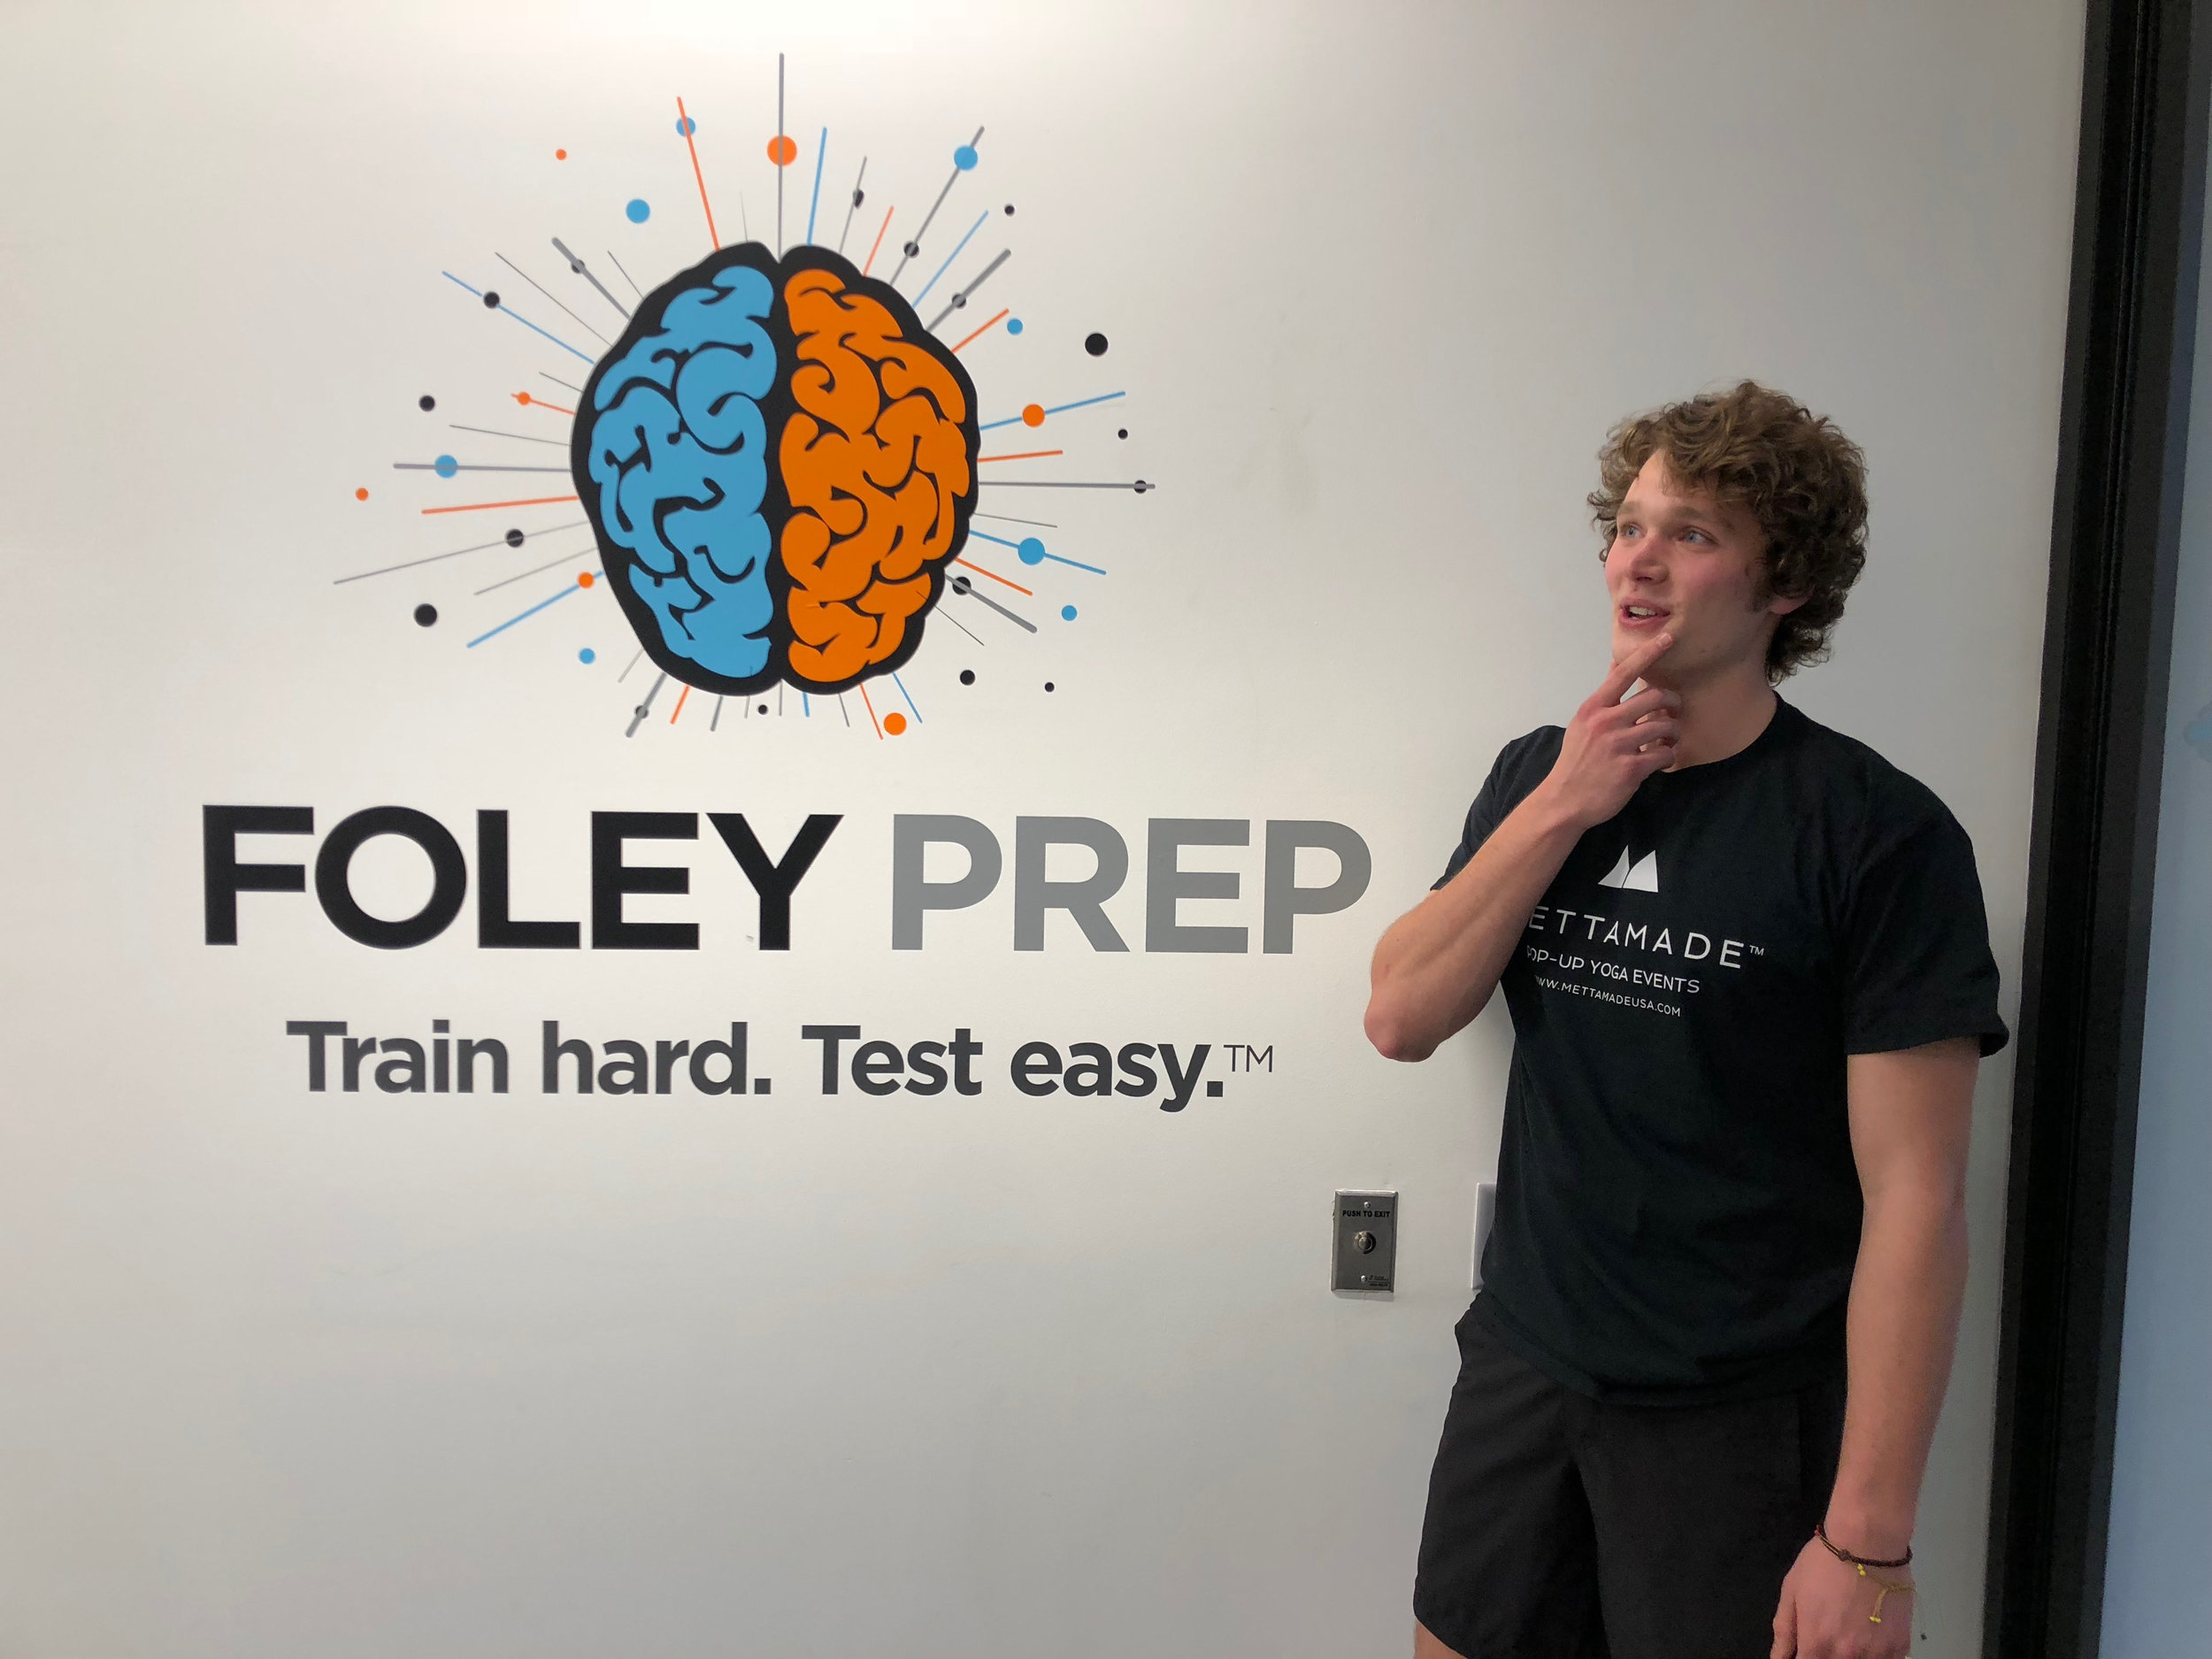 Welcome — Foley Prep | Train hard  Test easy